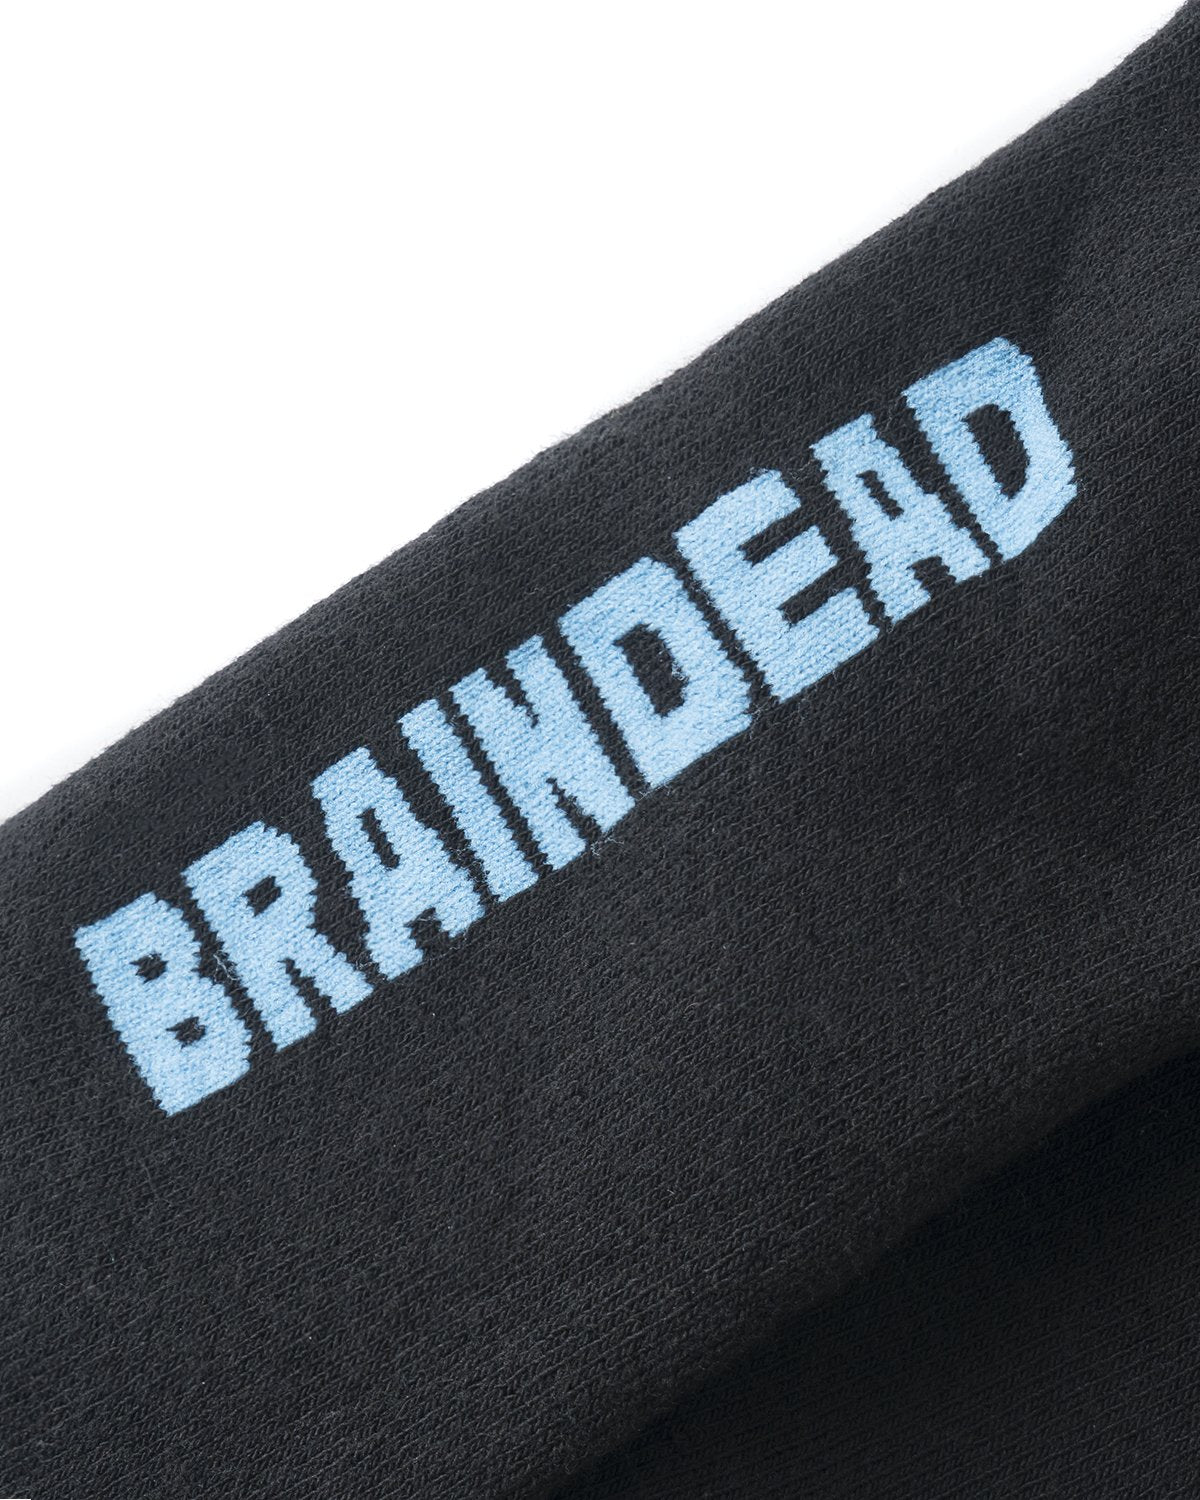 BRAINDEAD SOCKS MULTI O/S STRIPED LOGO HEAD SOCK - PINK/NATURAL/BLACK/TEAL